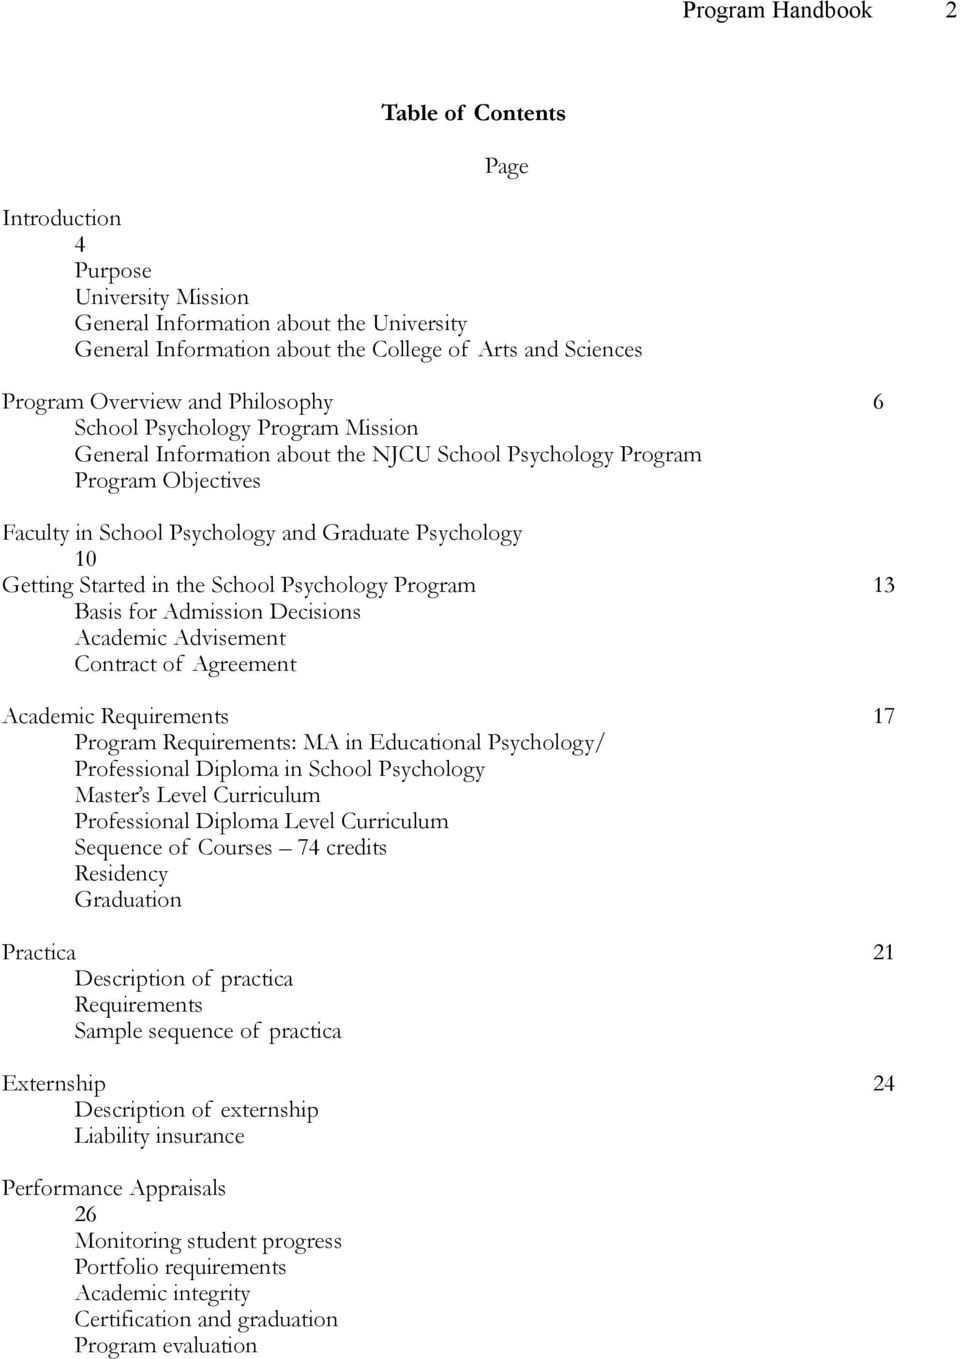 School Psychology Program 13 Basis for Admission Decisions Academic Advisement Contract of Agreement Academic Requirements 17 Program Requirements: MA in Educational Psychology/ Professional Diploma